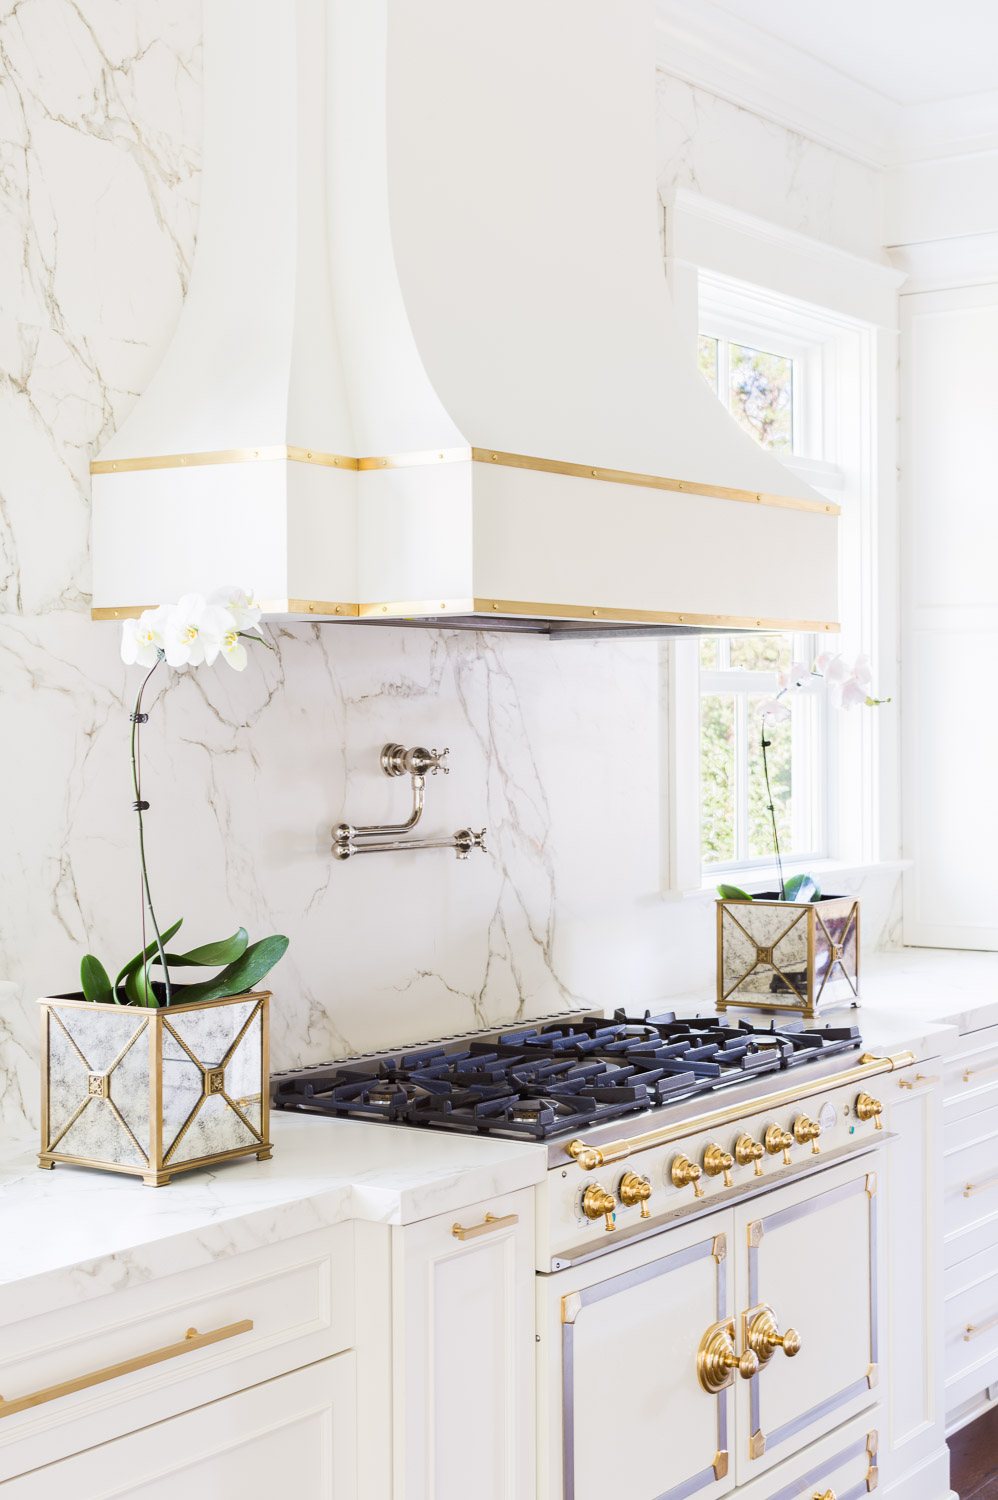 Marble Kitchen design by Laura Burleson / Image by Alyssa Rosenheck